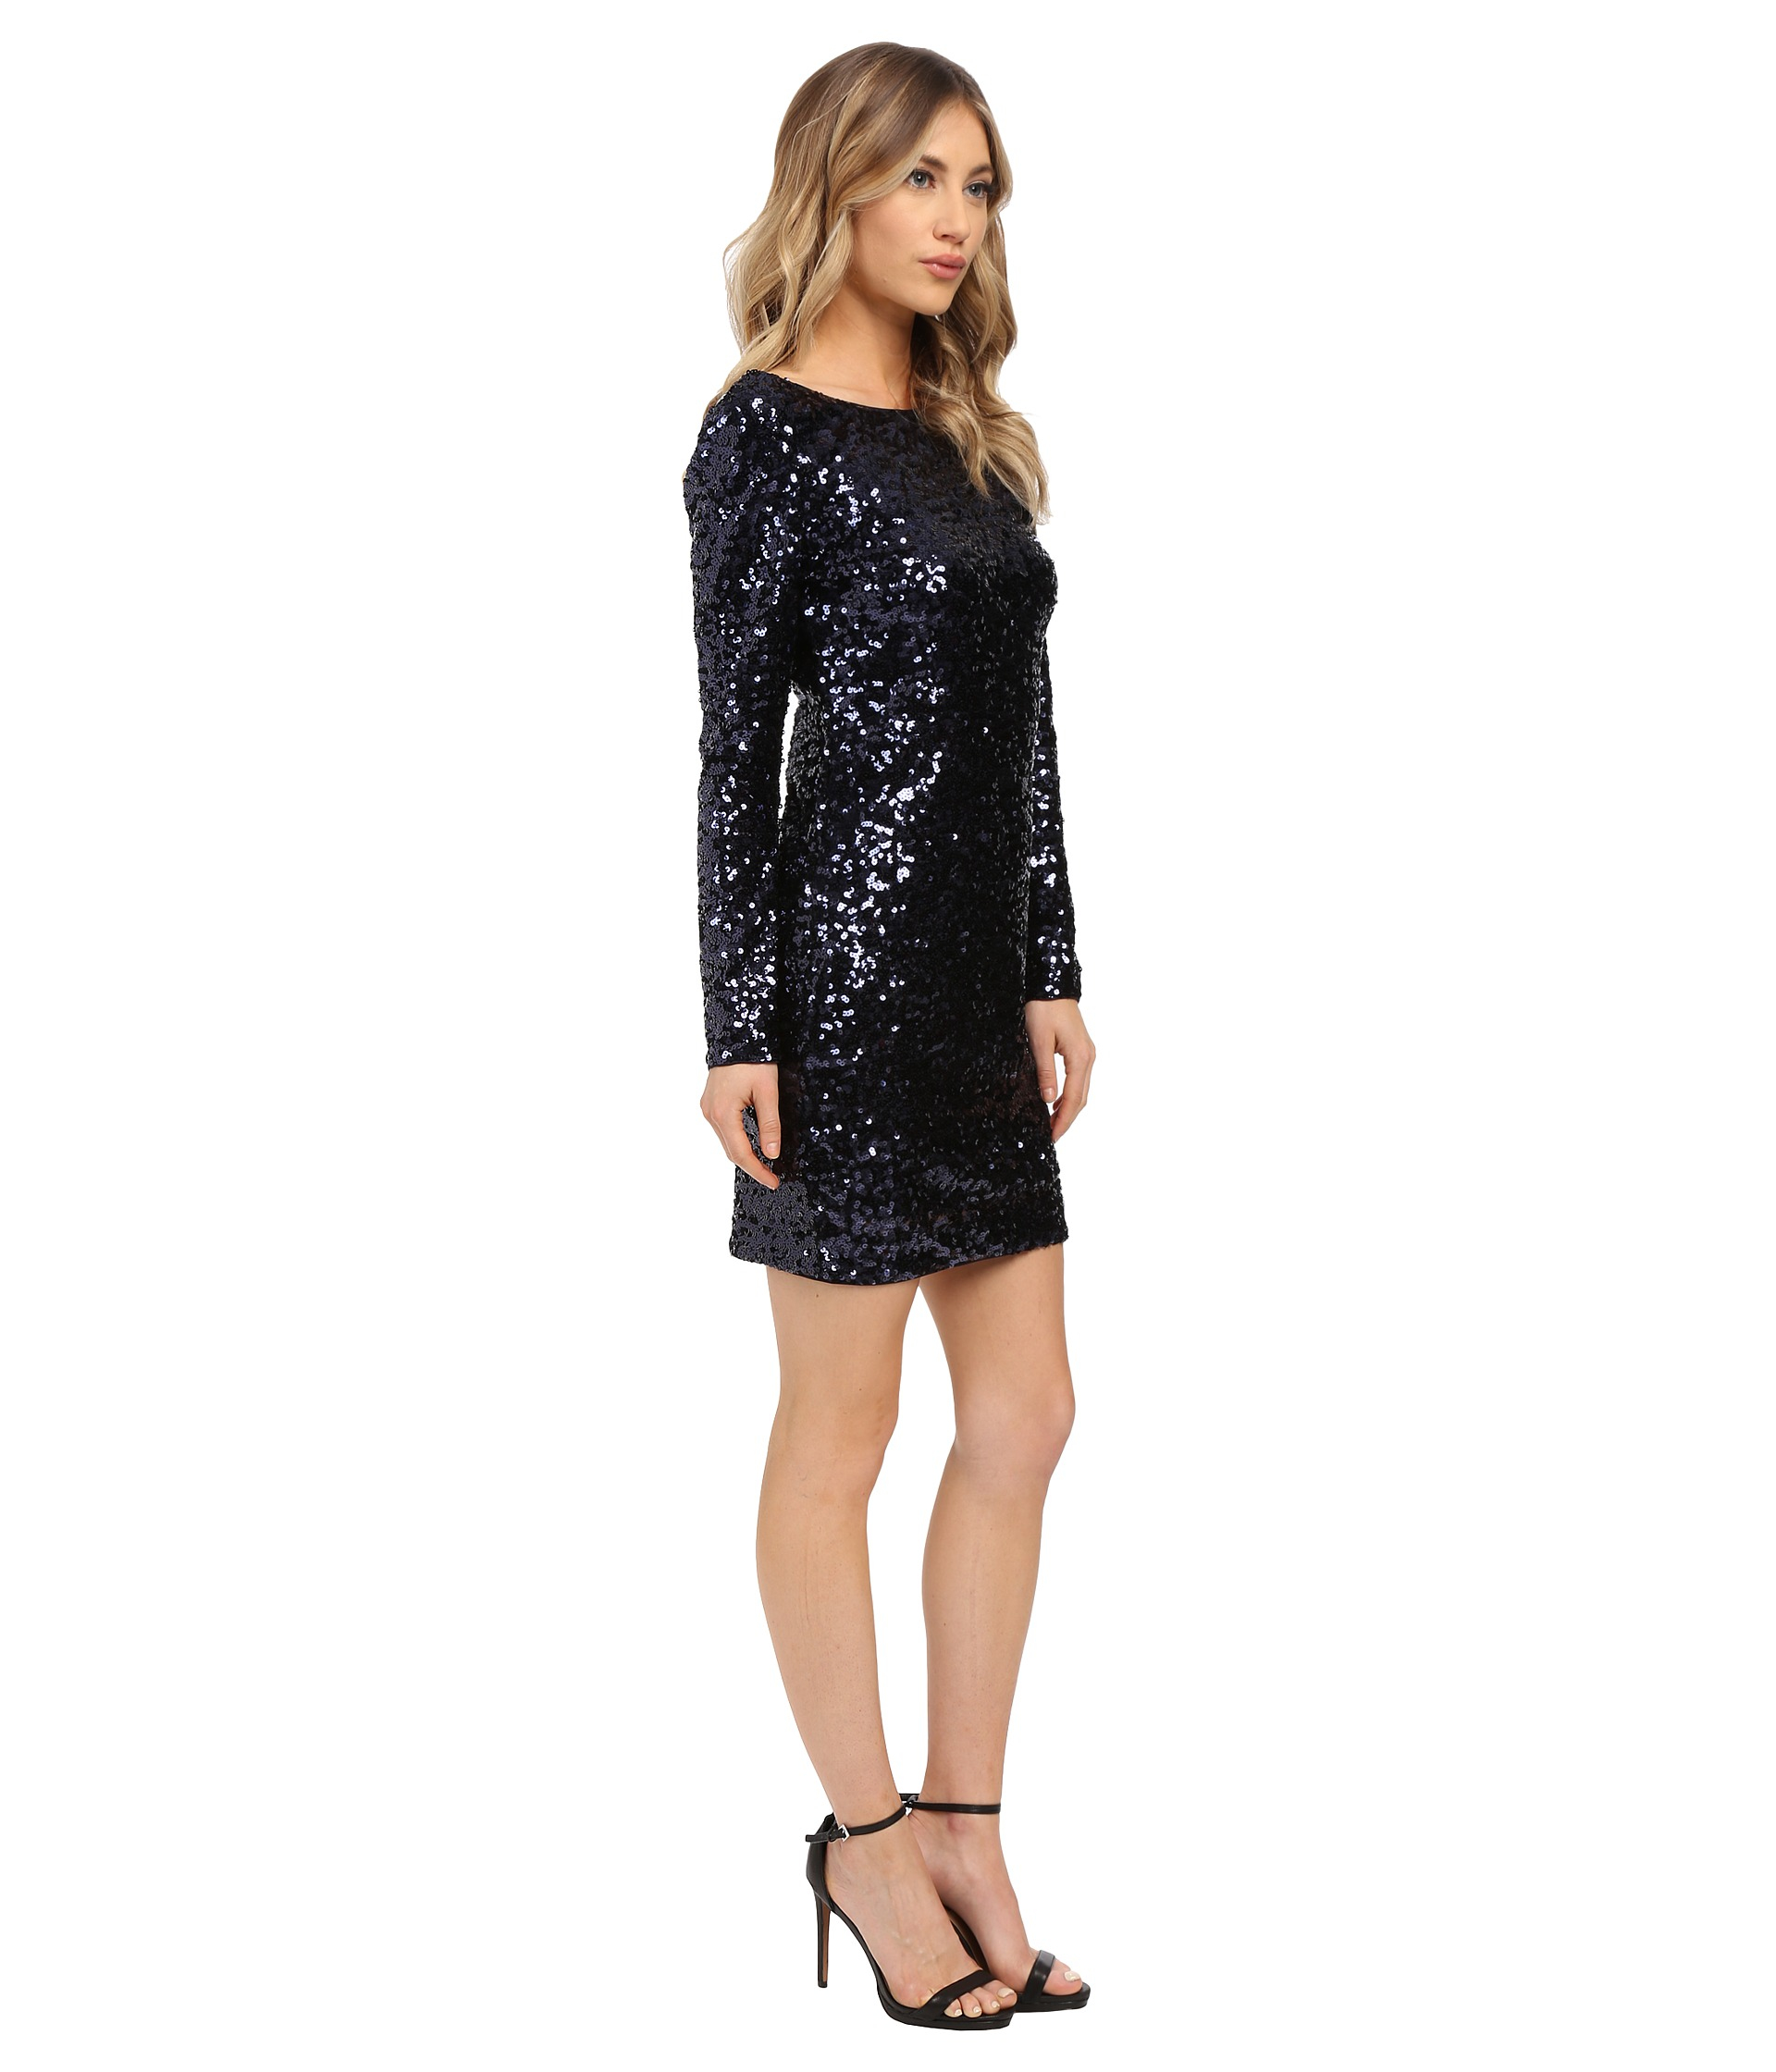 Jessica simpson Long Sleeve Sequin Dress in Blue - Lyst